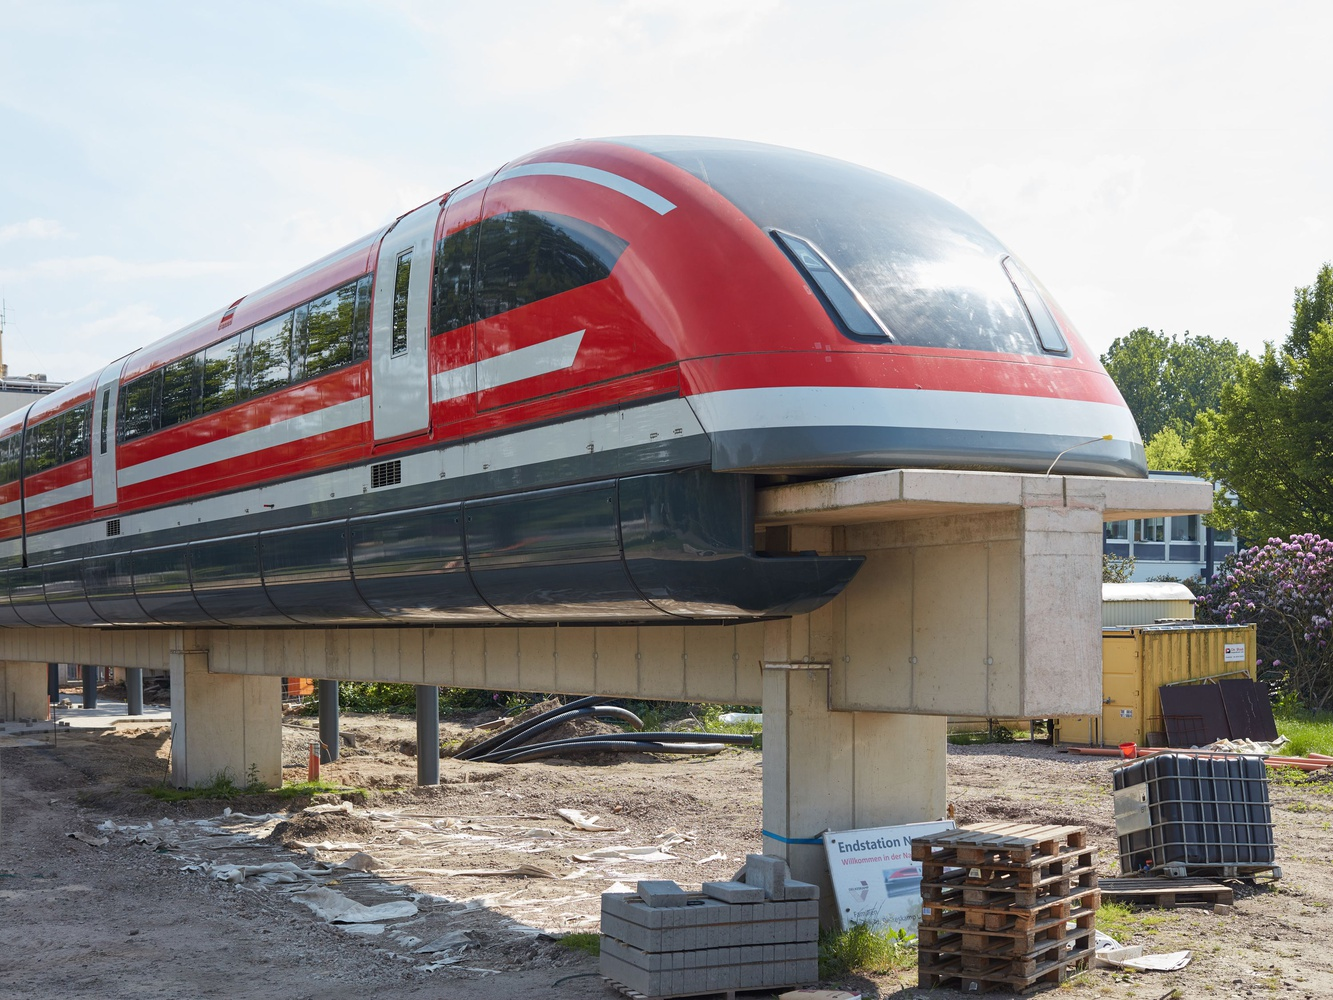 Transrapid 09 in Nortrup